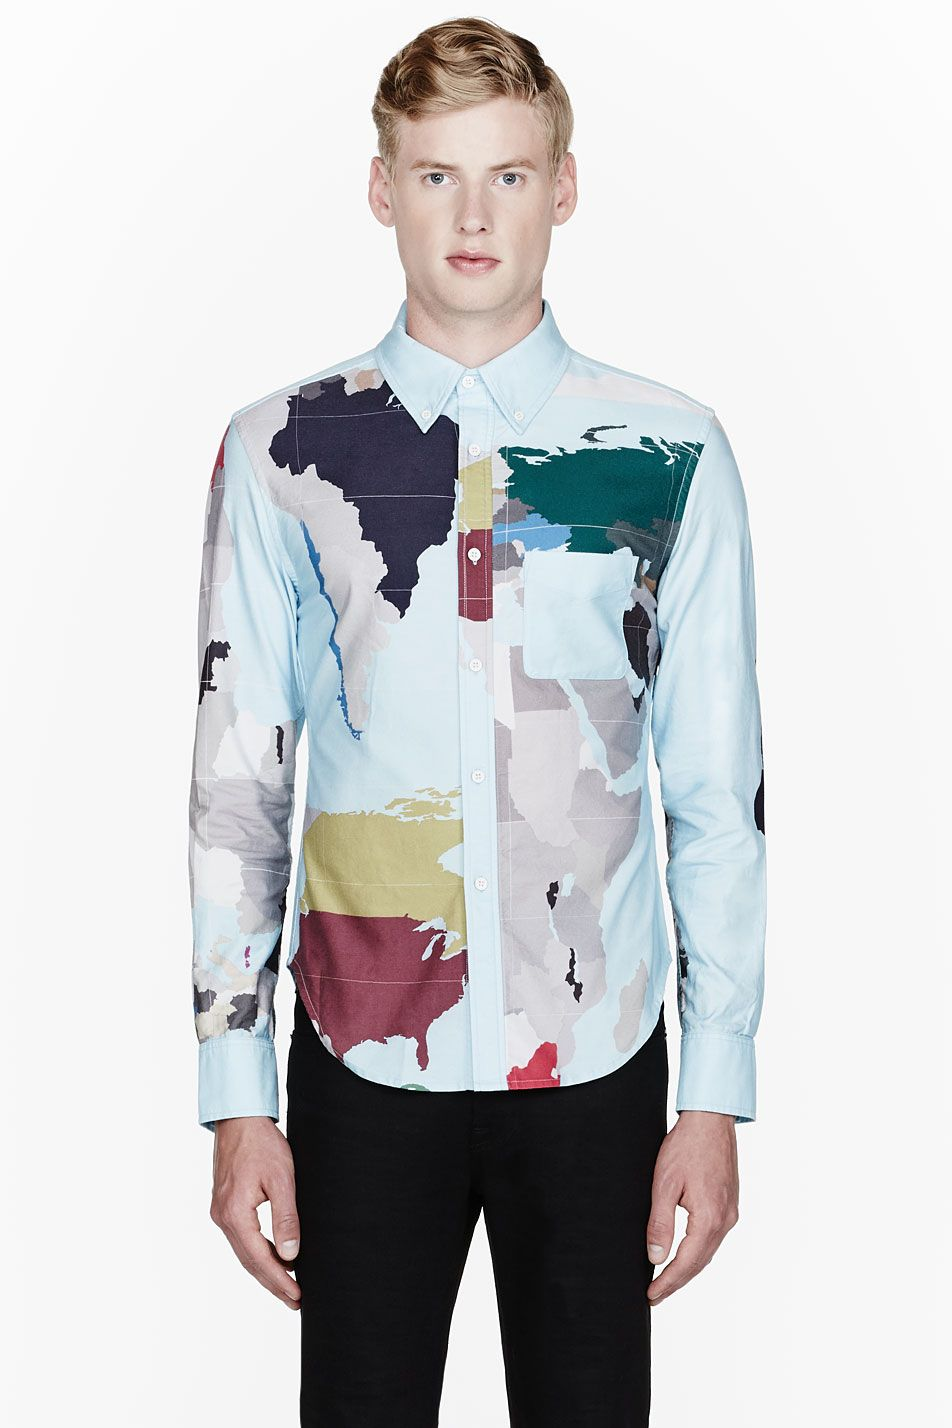 Paul Smith for Men FW17 Collection